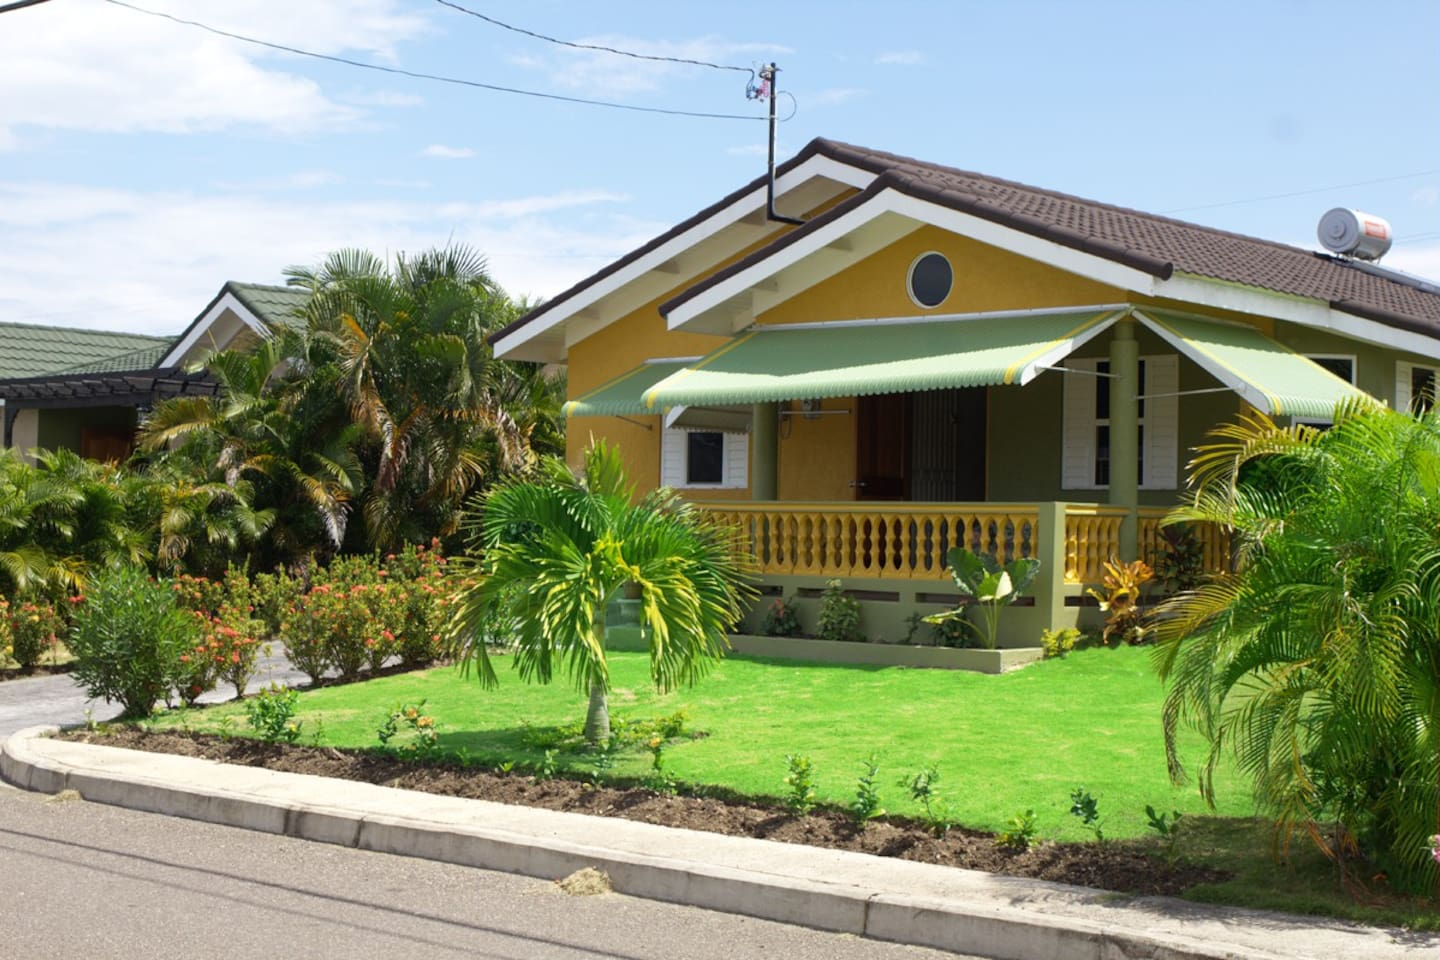 Frontal view of the Manor Vista - Cozy Ensuite with bright, blended colors  and thick palms on both sides; manicured lawn and beautiful flowers set in the back drop of a tropical  skyline